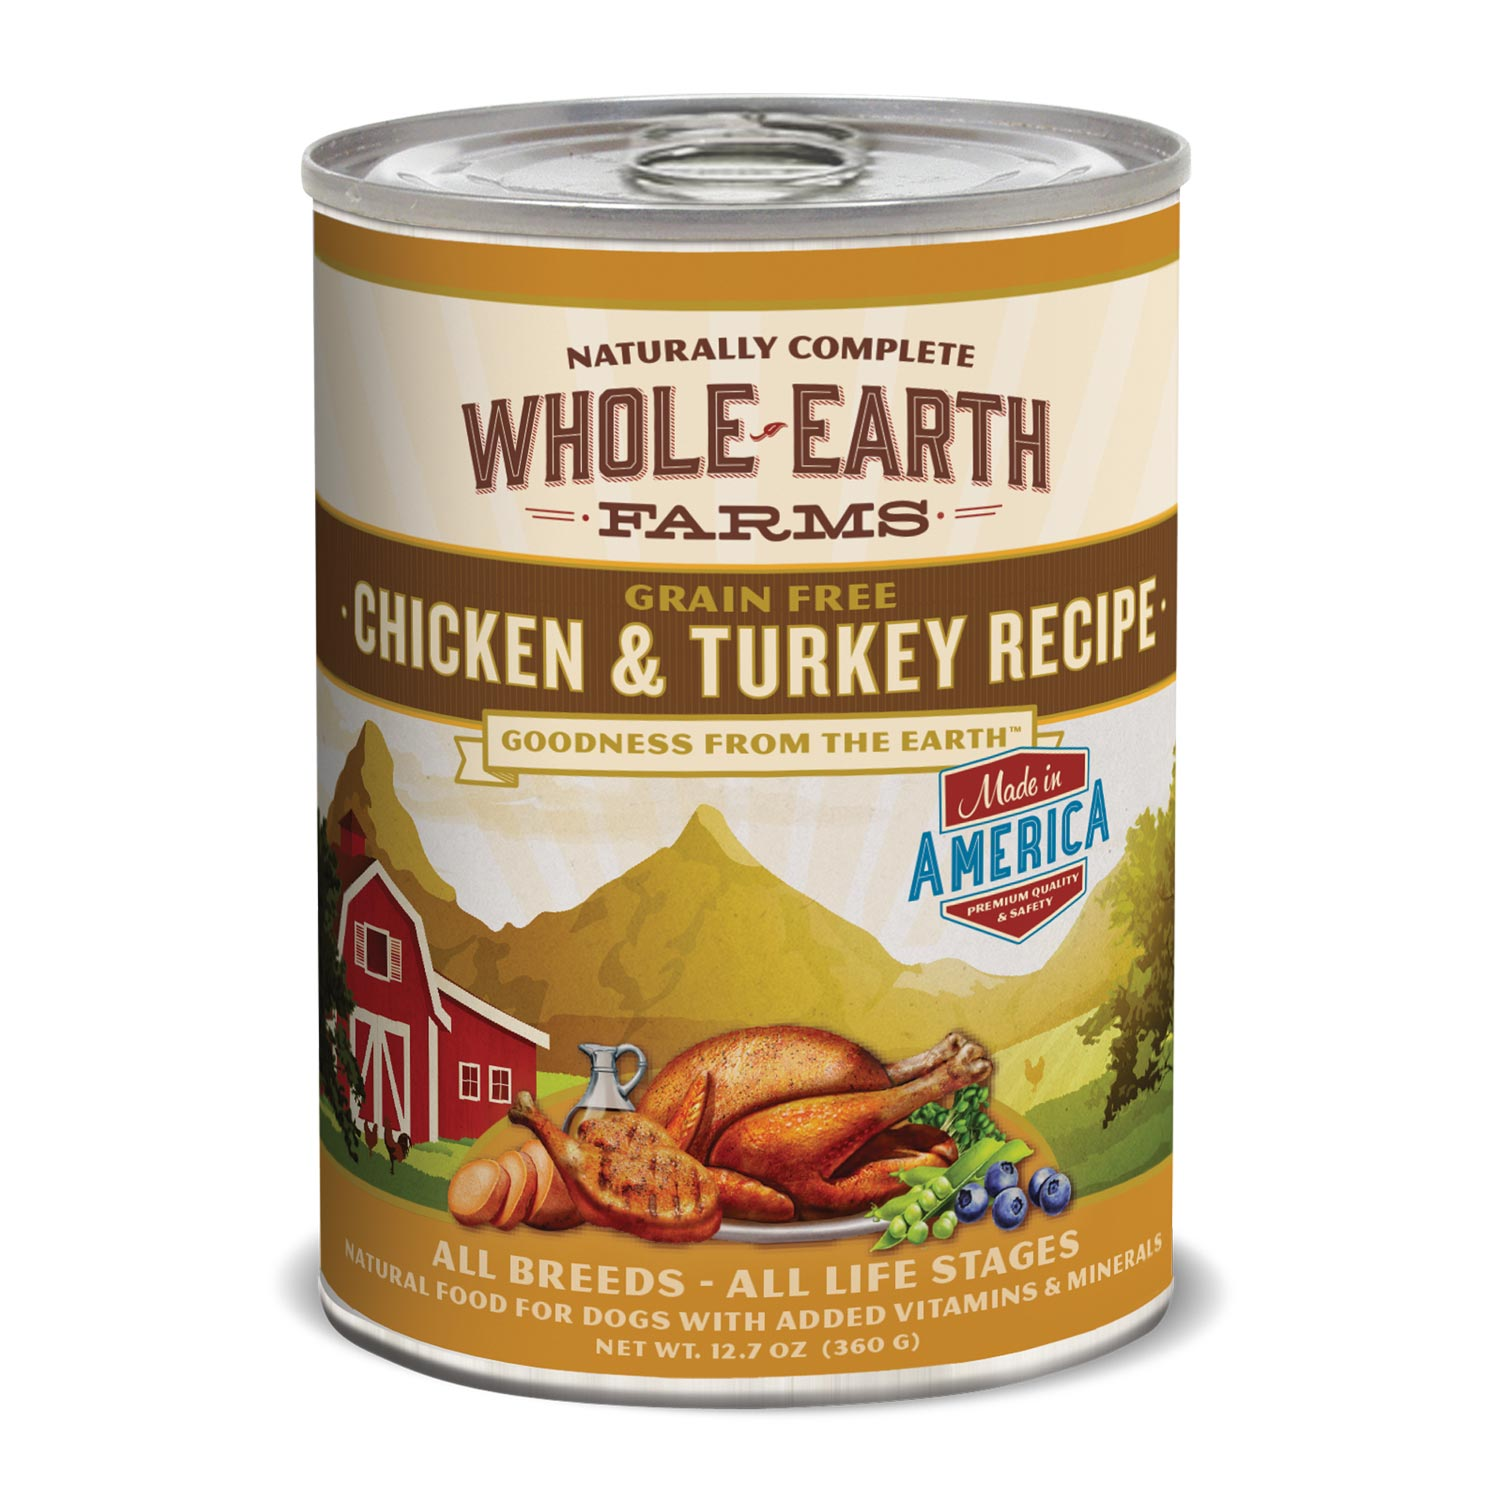 Whole Earth Farms Grain Free Chicken & Turkey Canned Dog Food